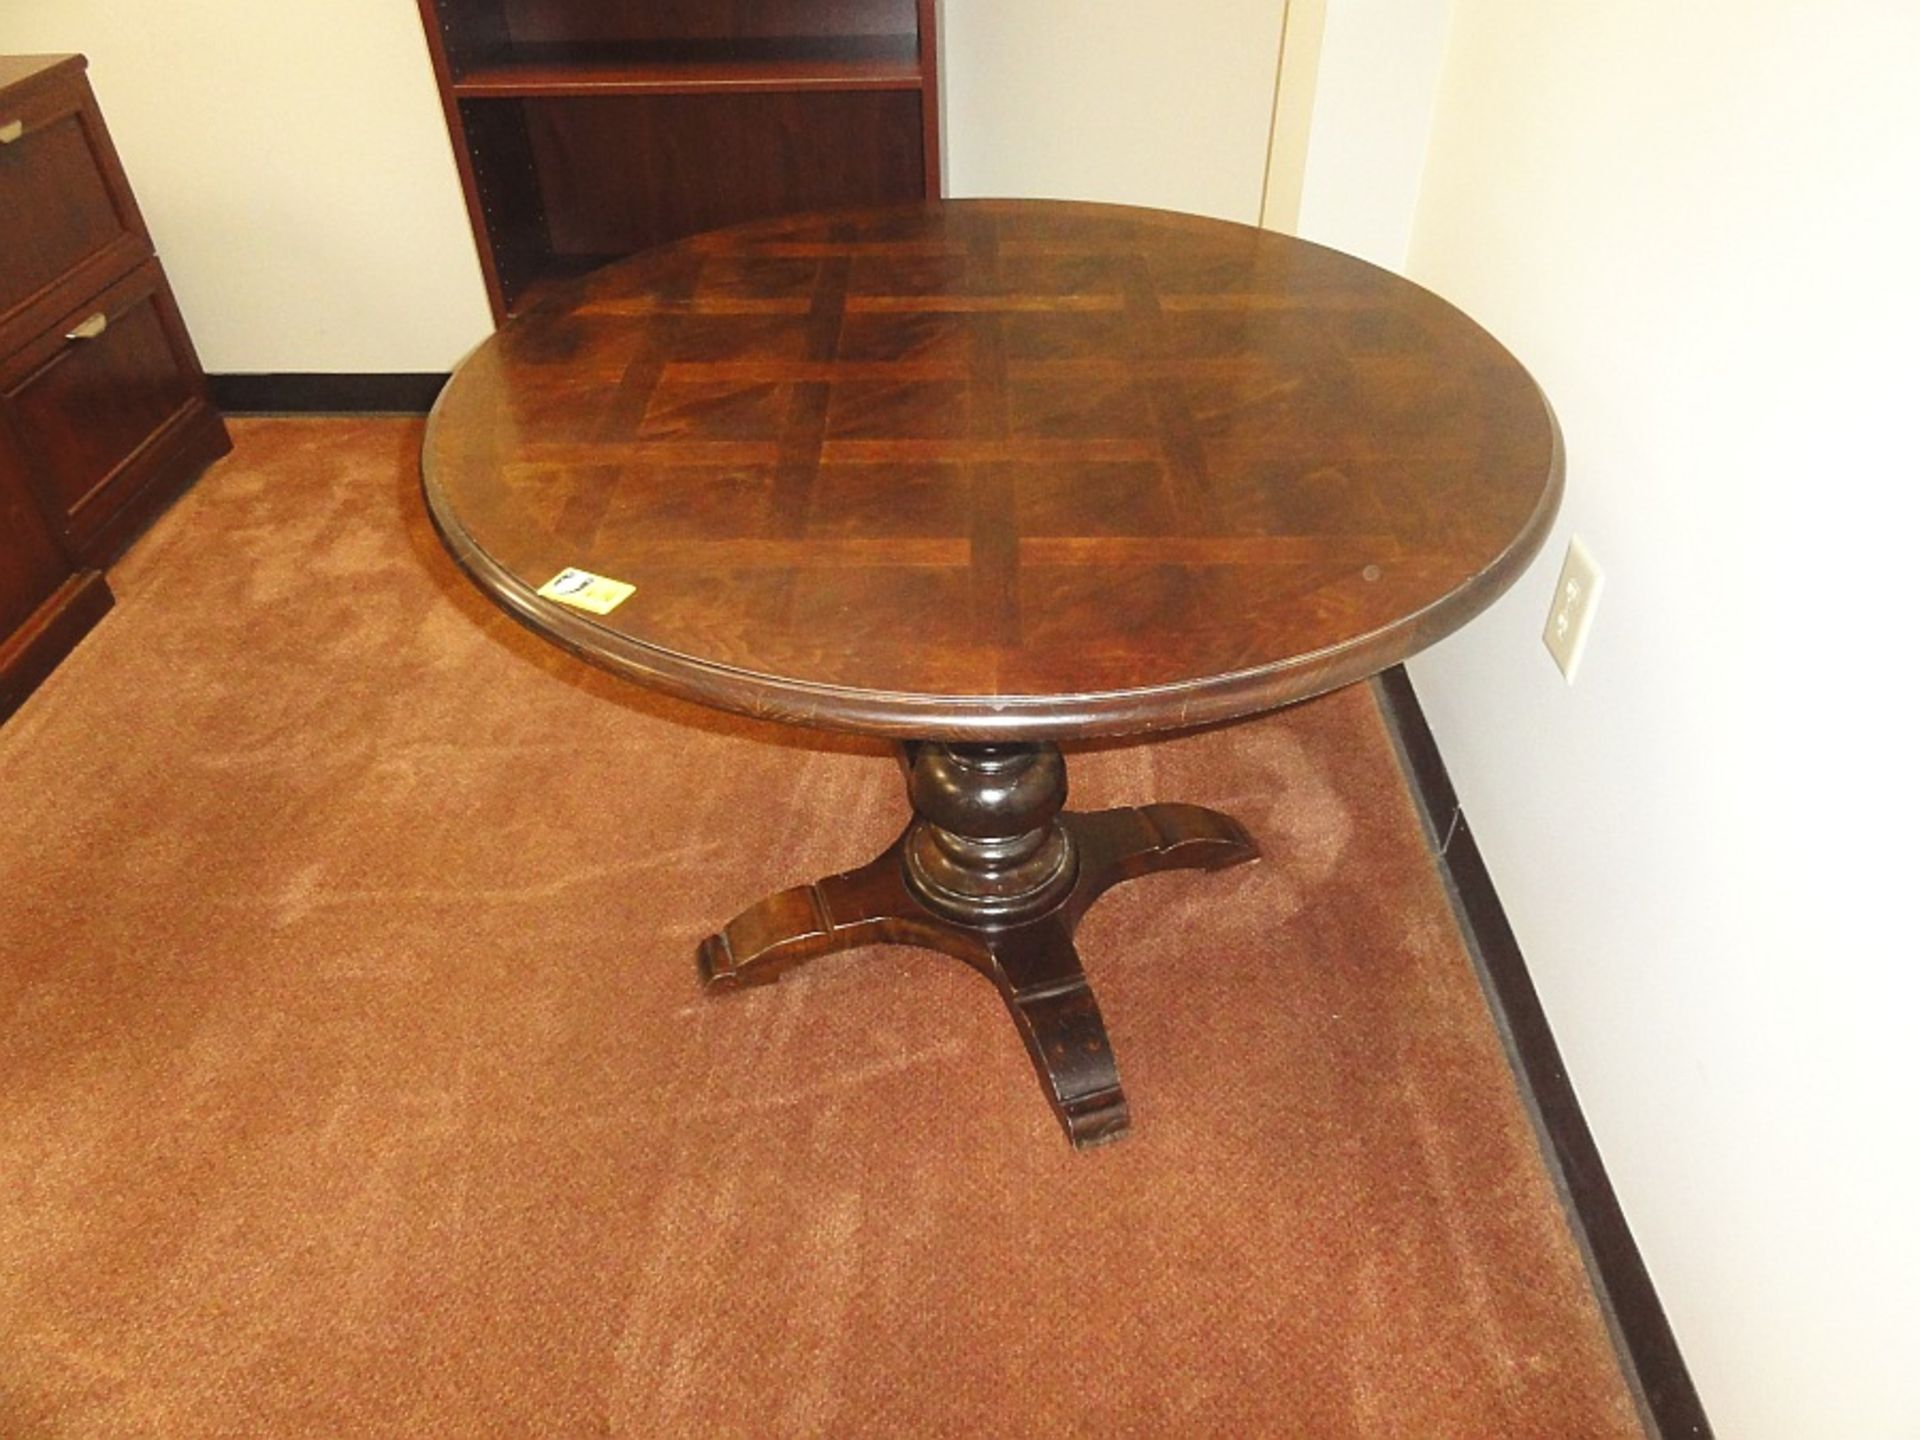 Lot 646 - Round Wooden Conference Table